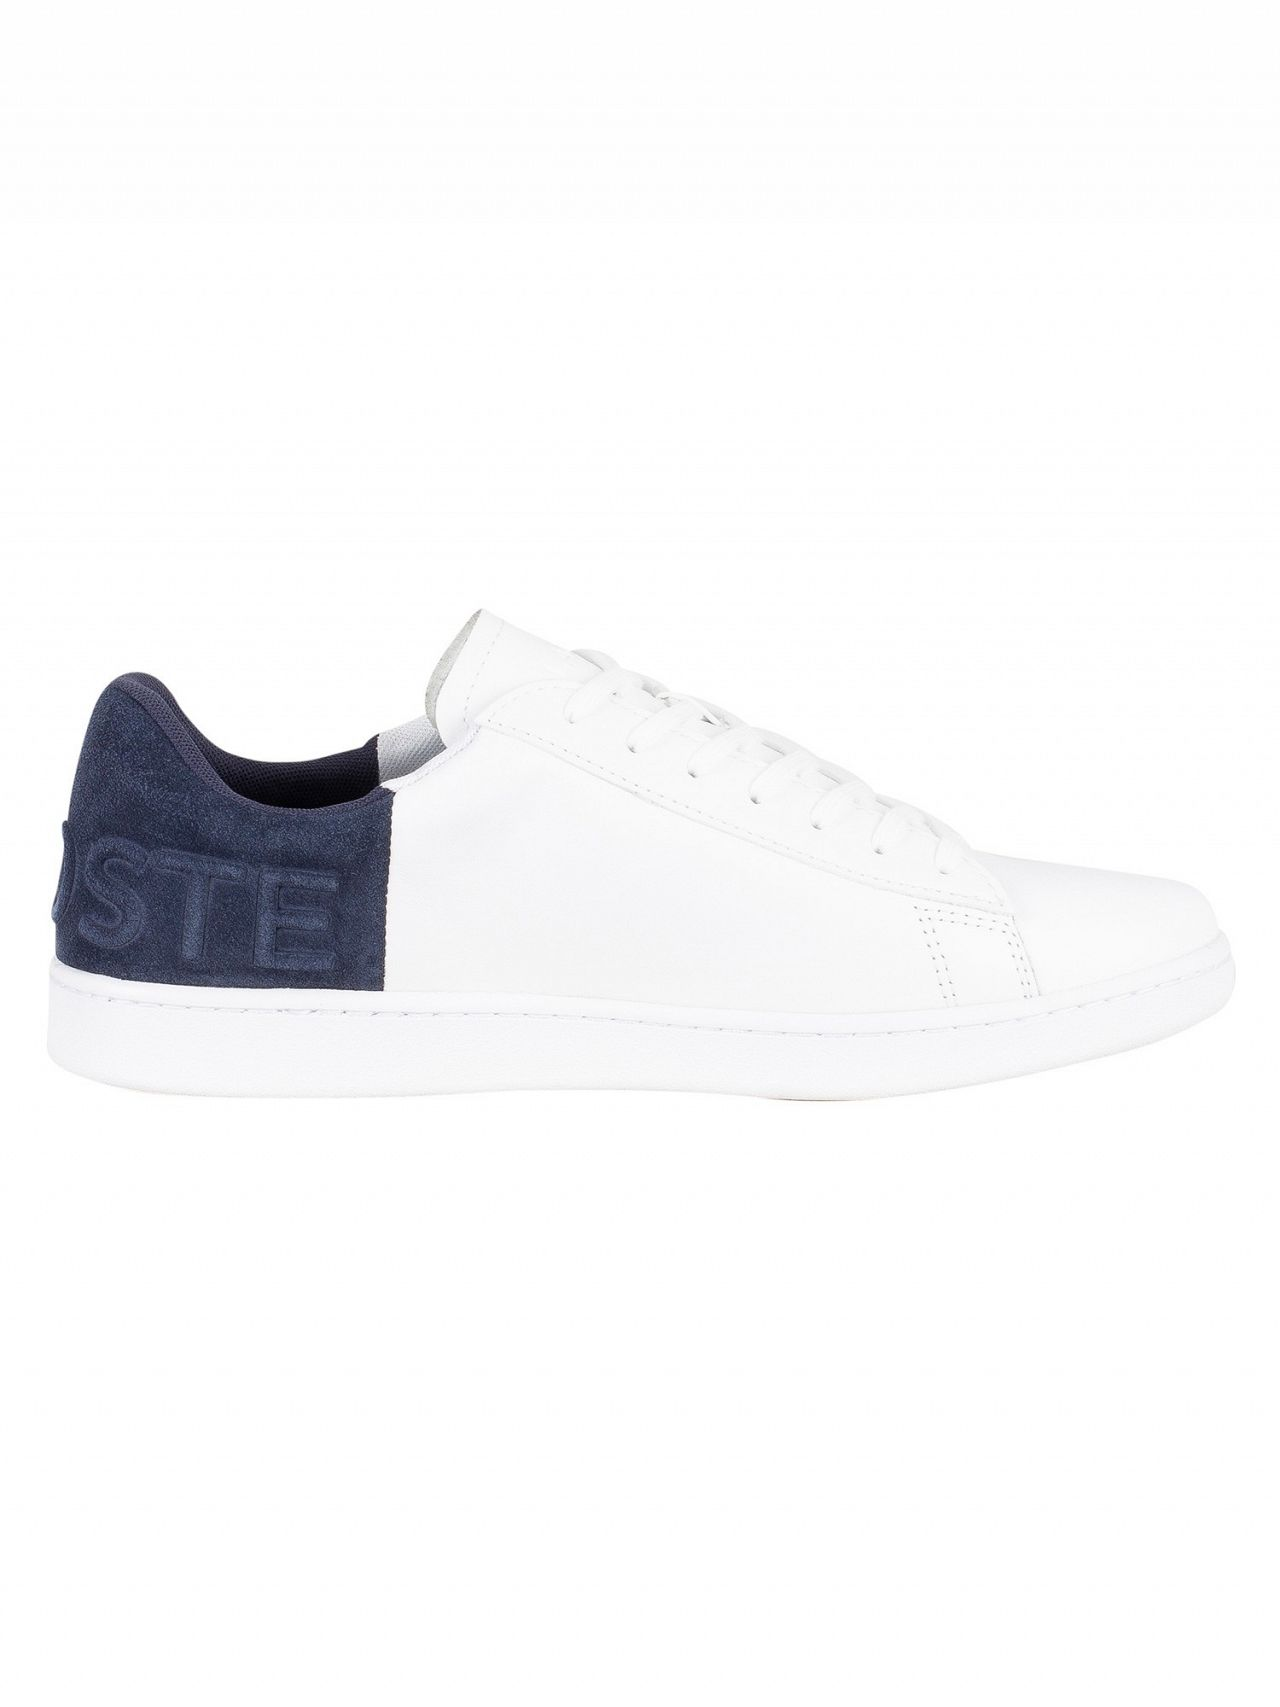 d541a001c2d85 Lacoste White Navy Carnaby Evo 318 2 QSP SPM Leather Trainers